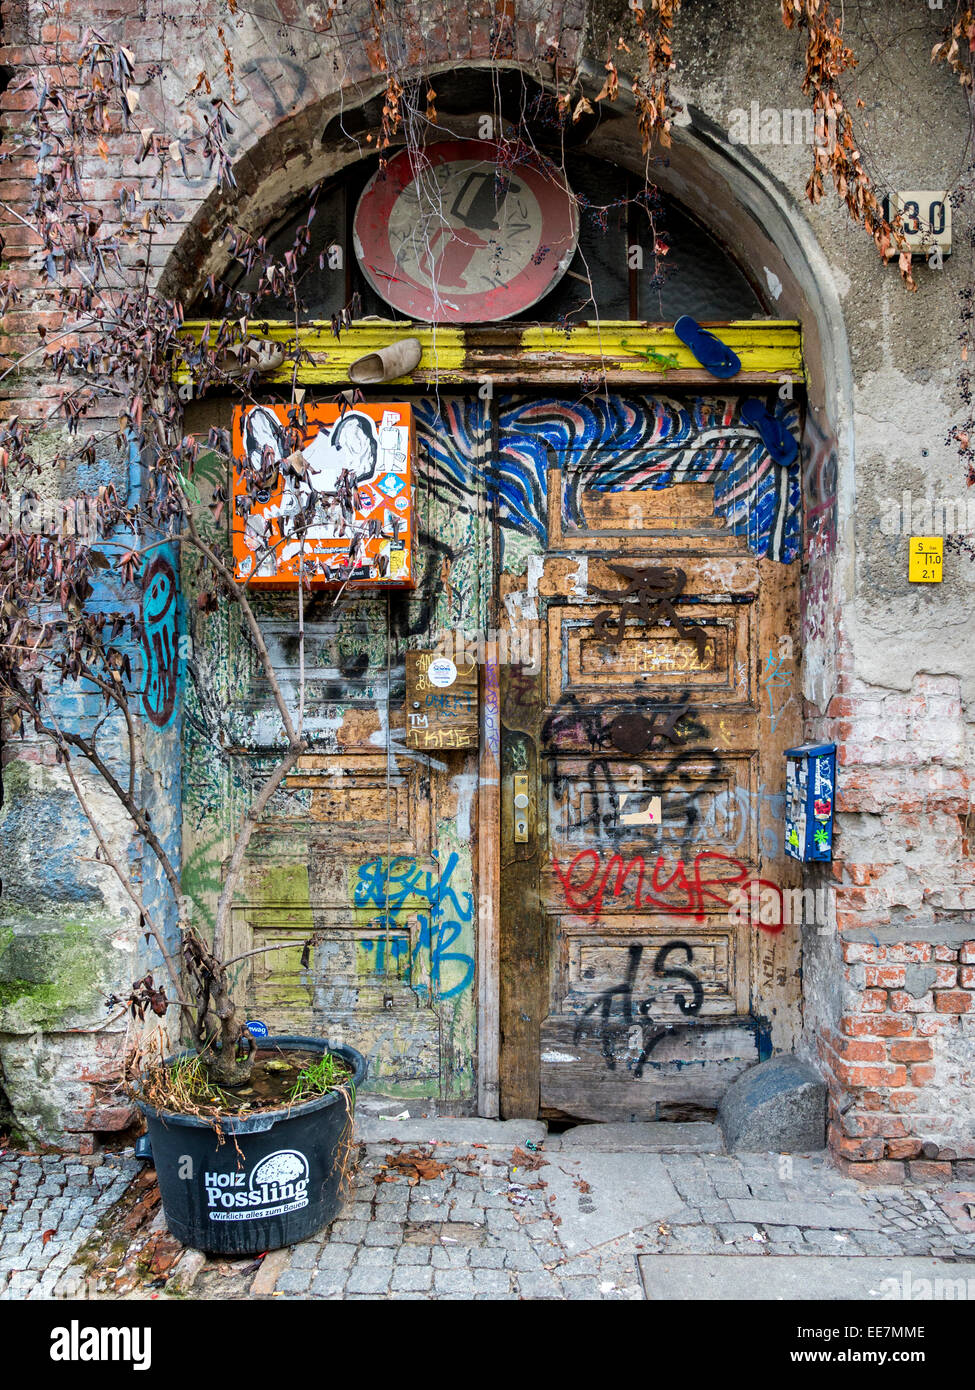 Building entrance door covered in graffiti, stickers, old shoes and dead plants, Tucholskystrasse, Mitte, Berlin - Stock Image